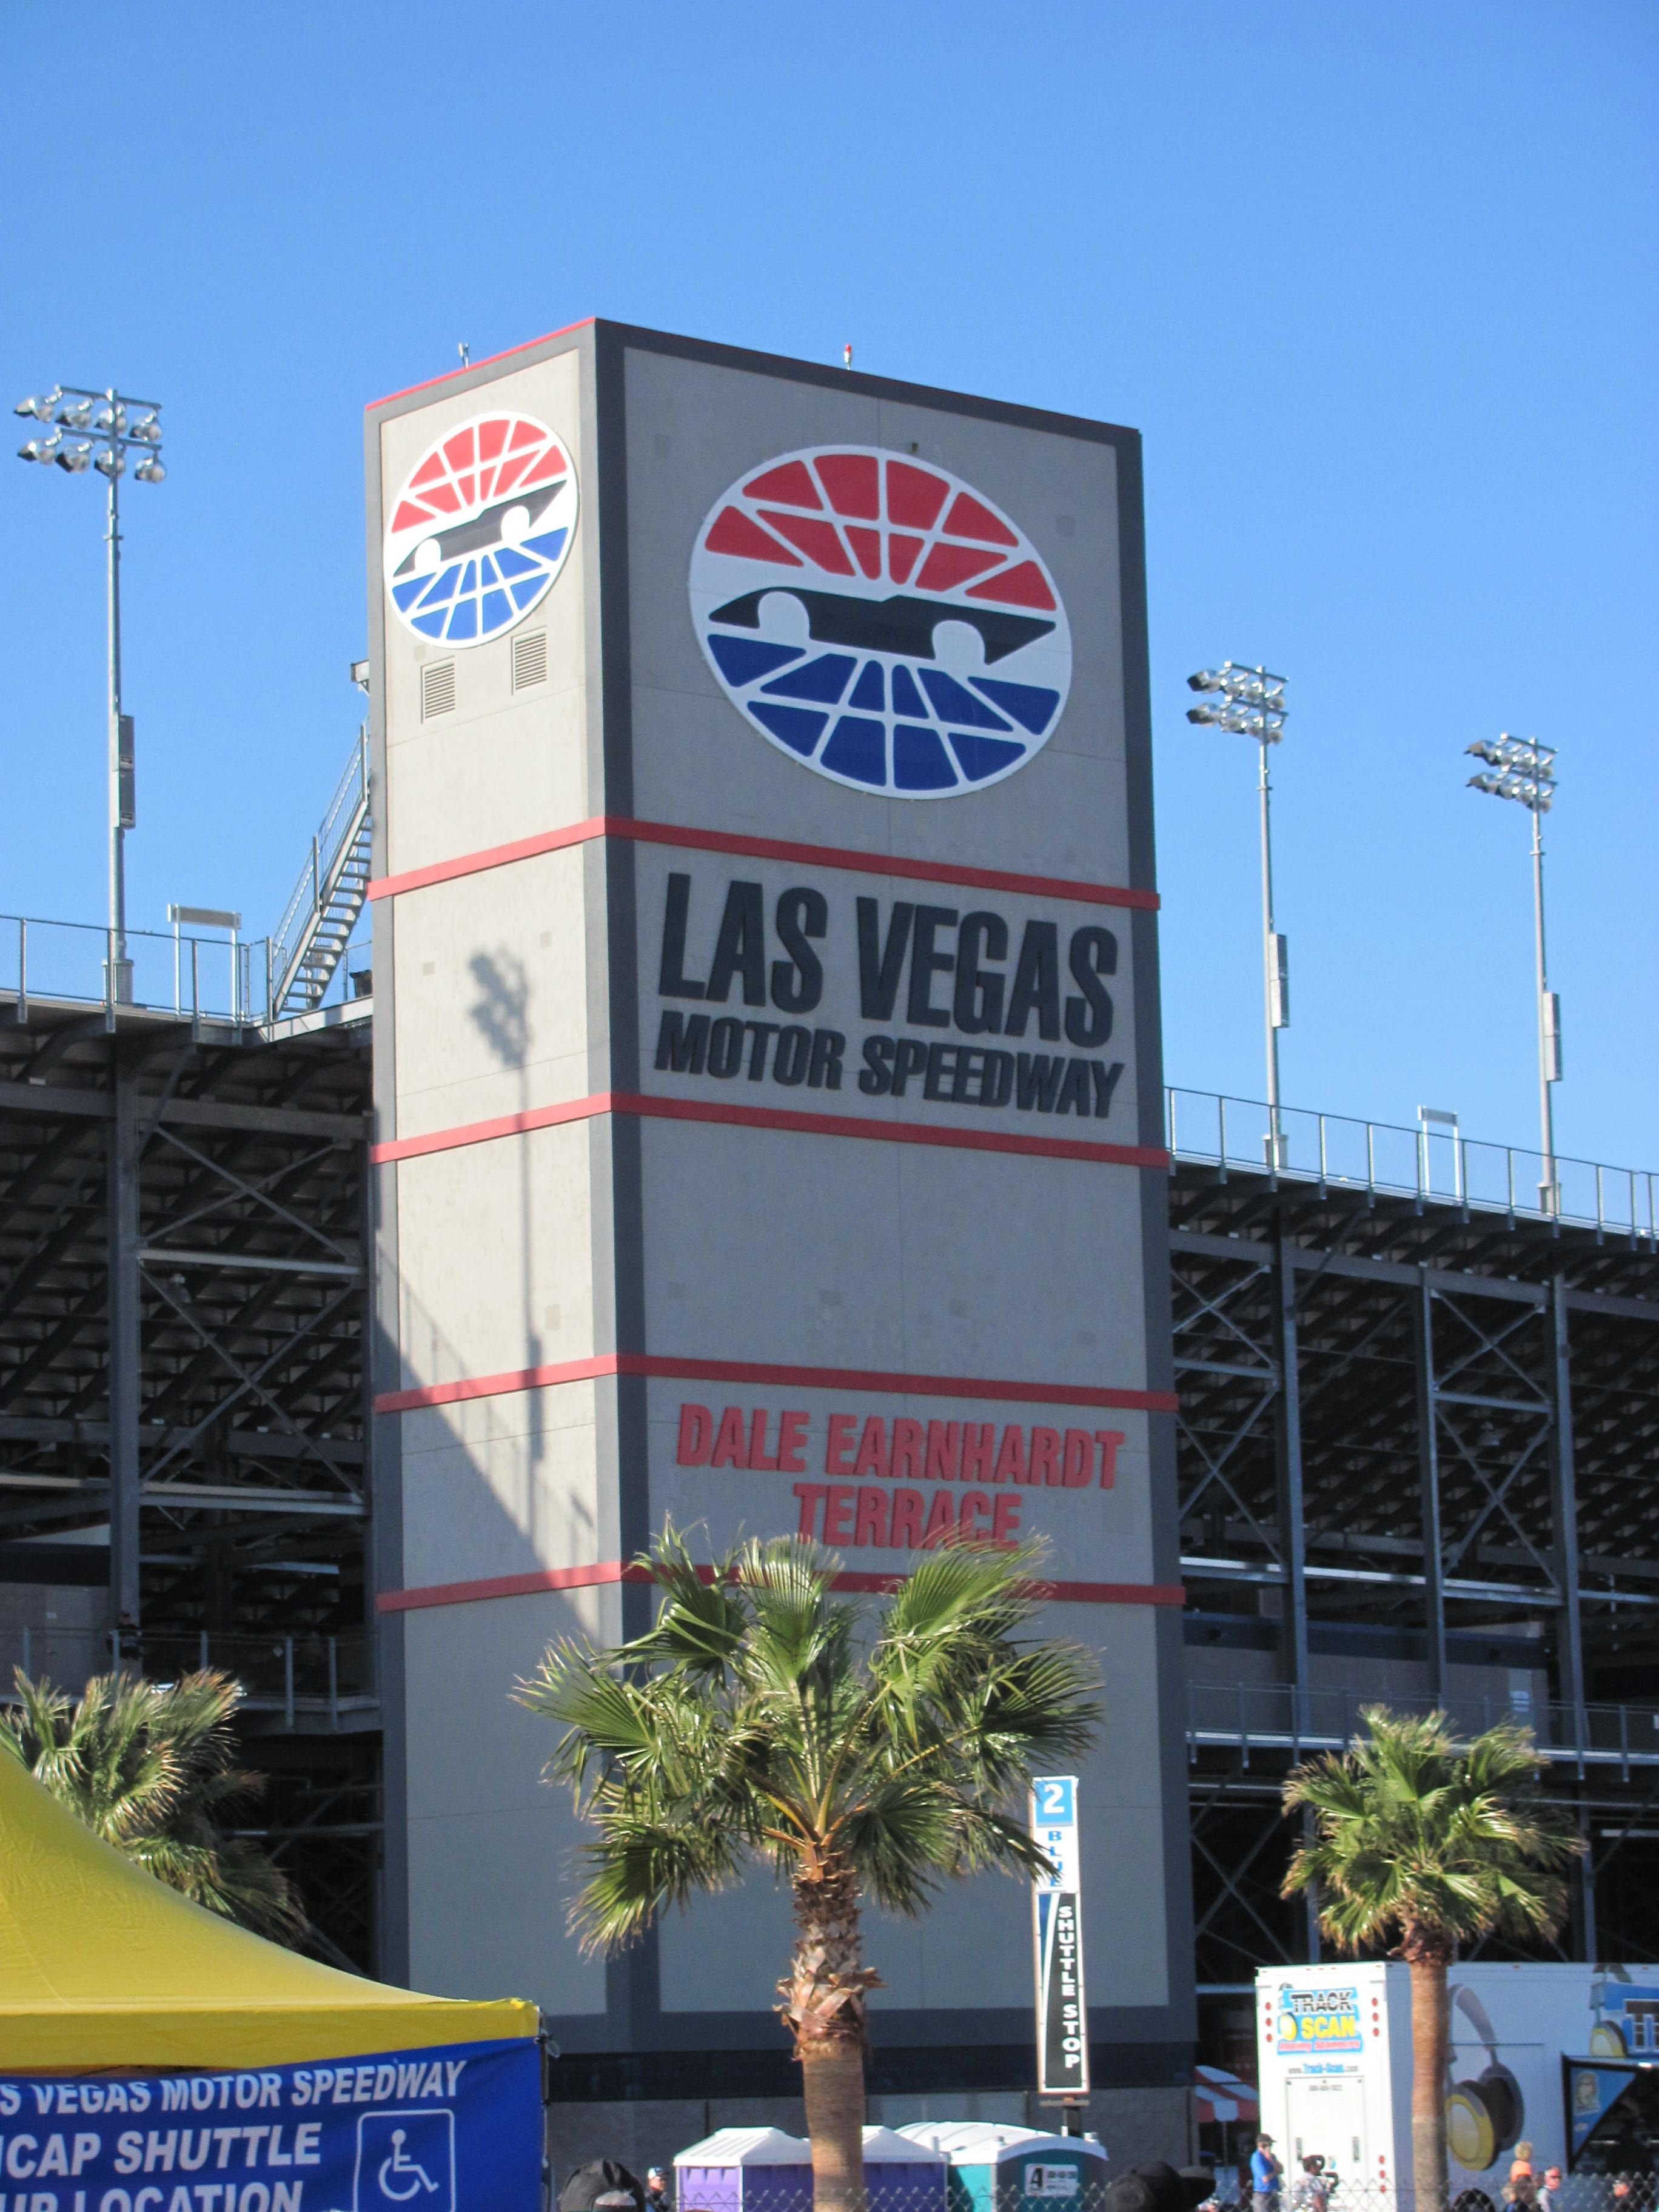 Las Vegas Motor Speedway | Travel--Places I've been | Las